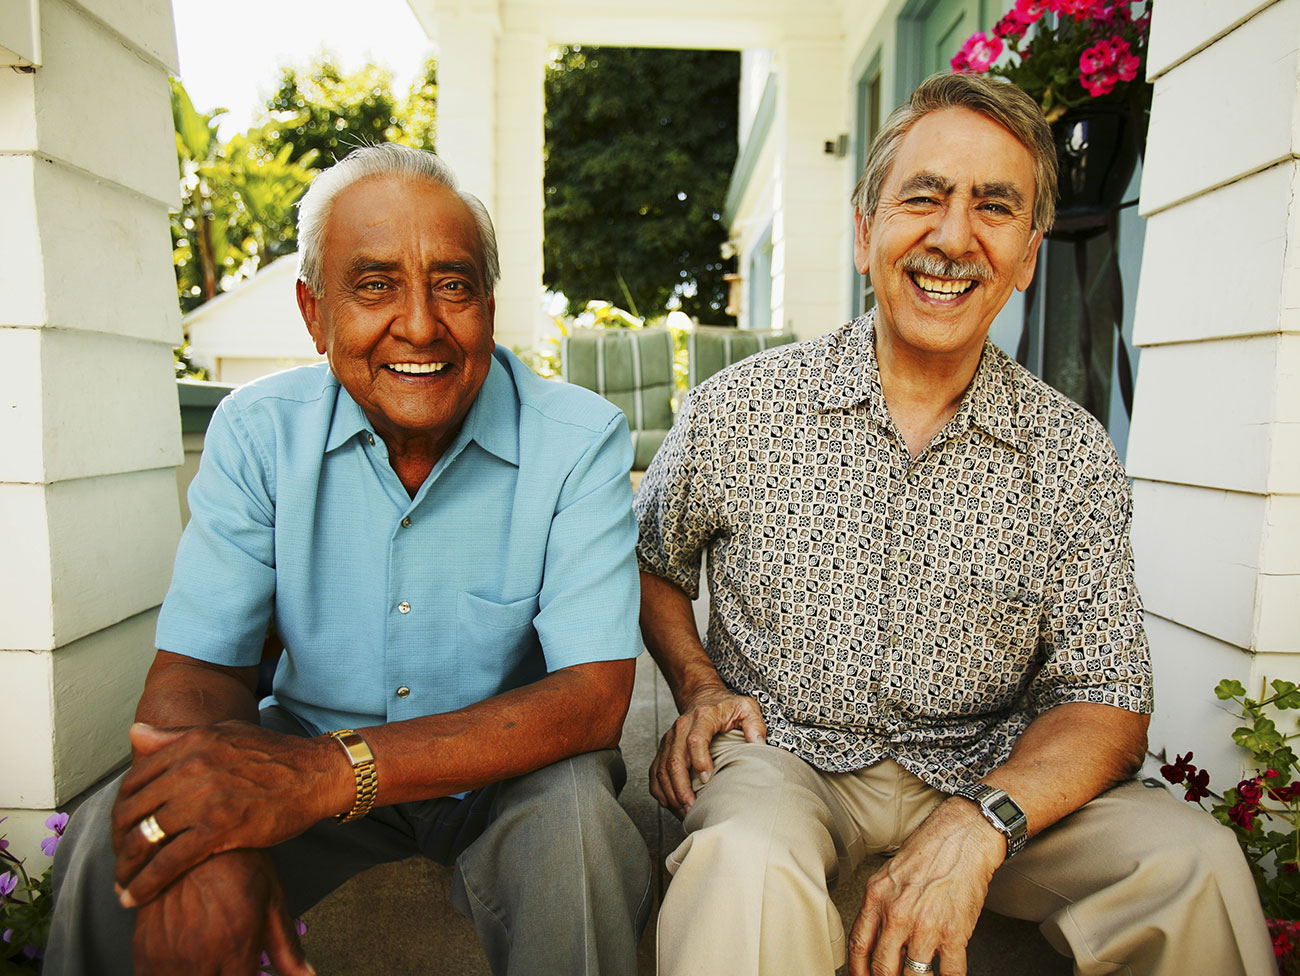 Two senior men sitting on a porch